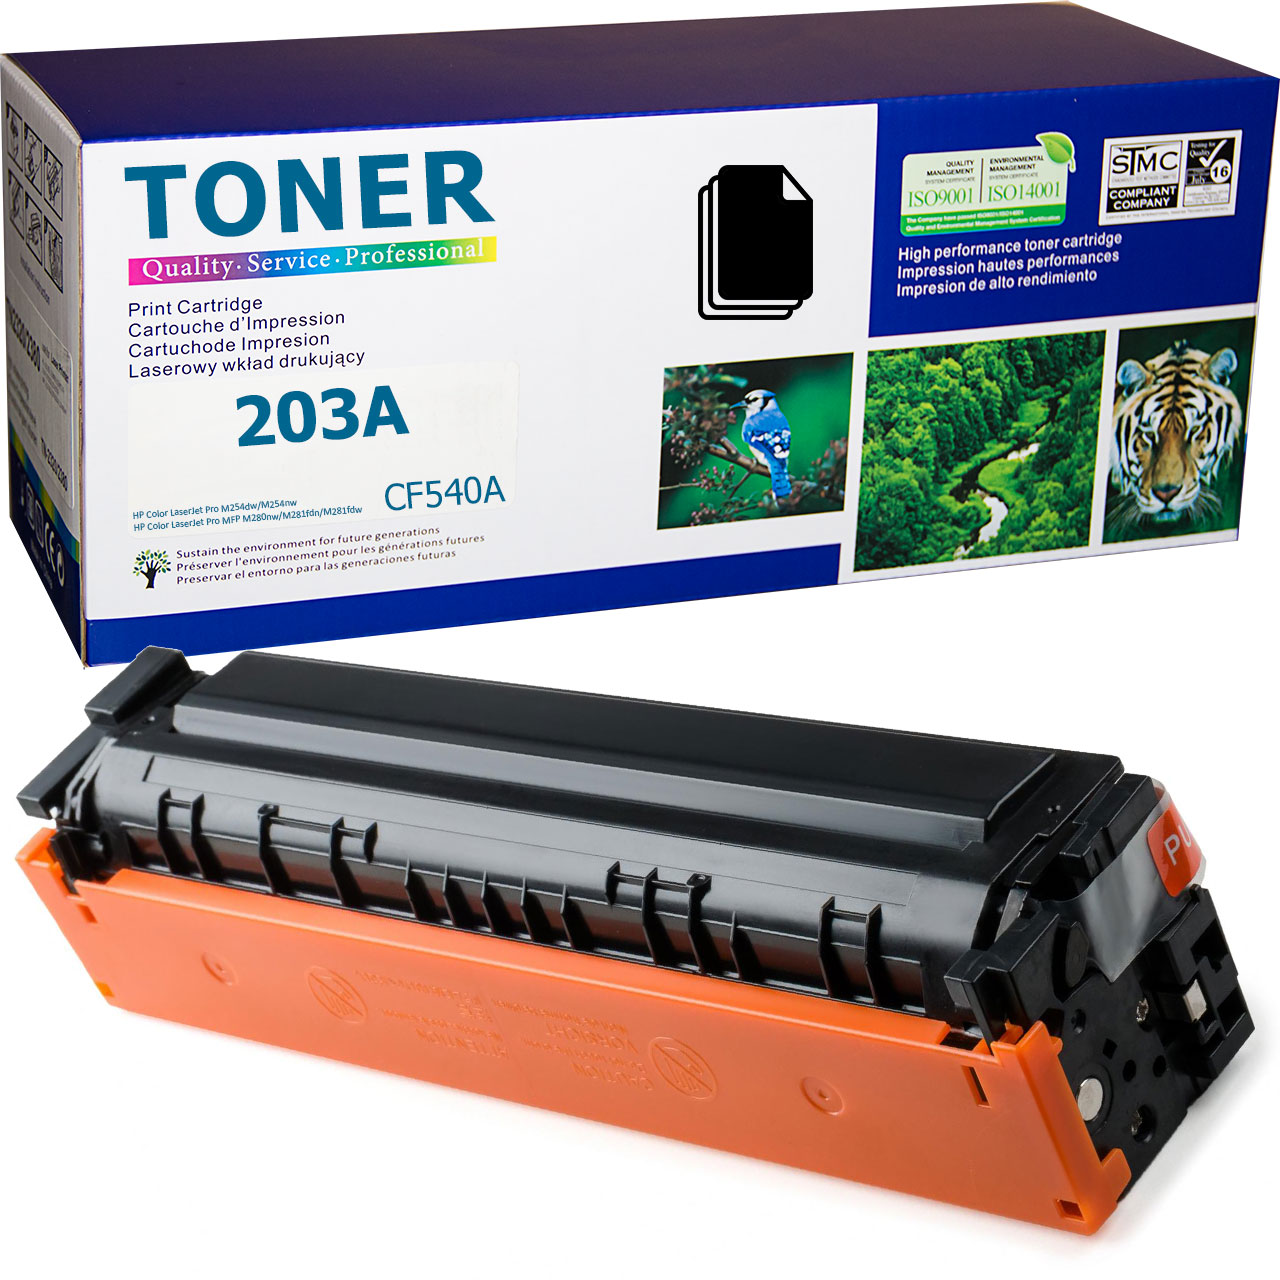 HP 203A Black, CF540A Toner Cartridge